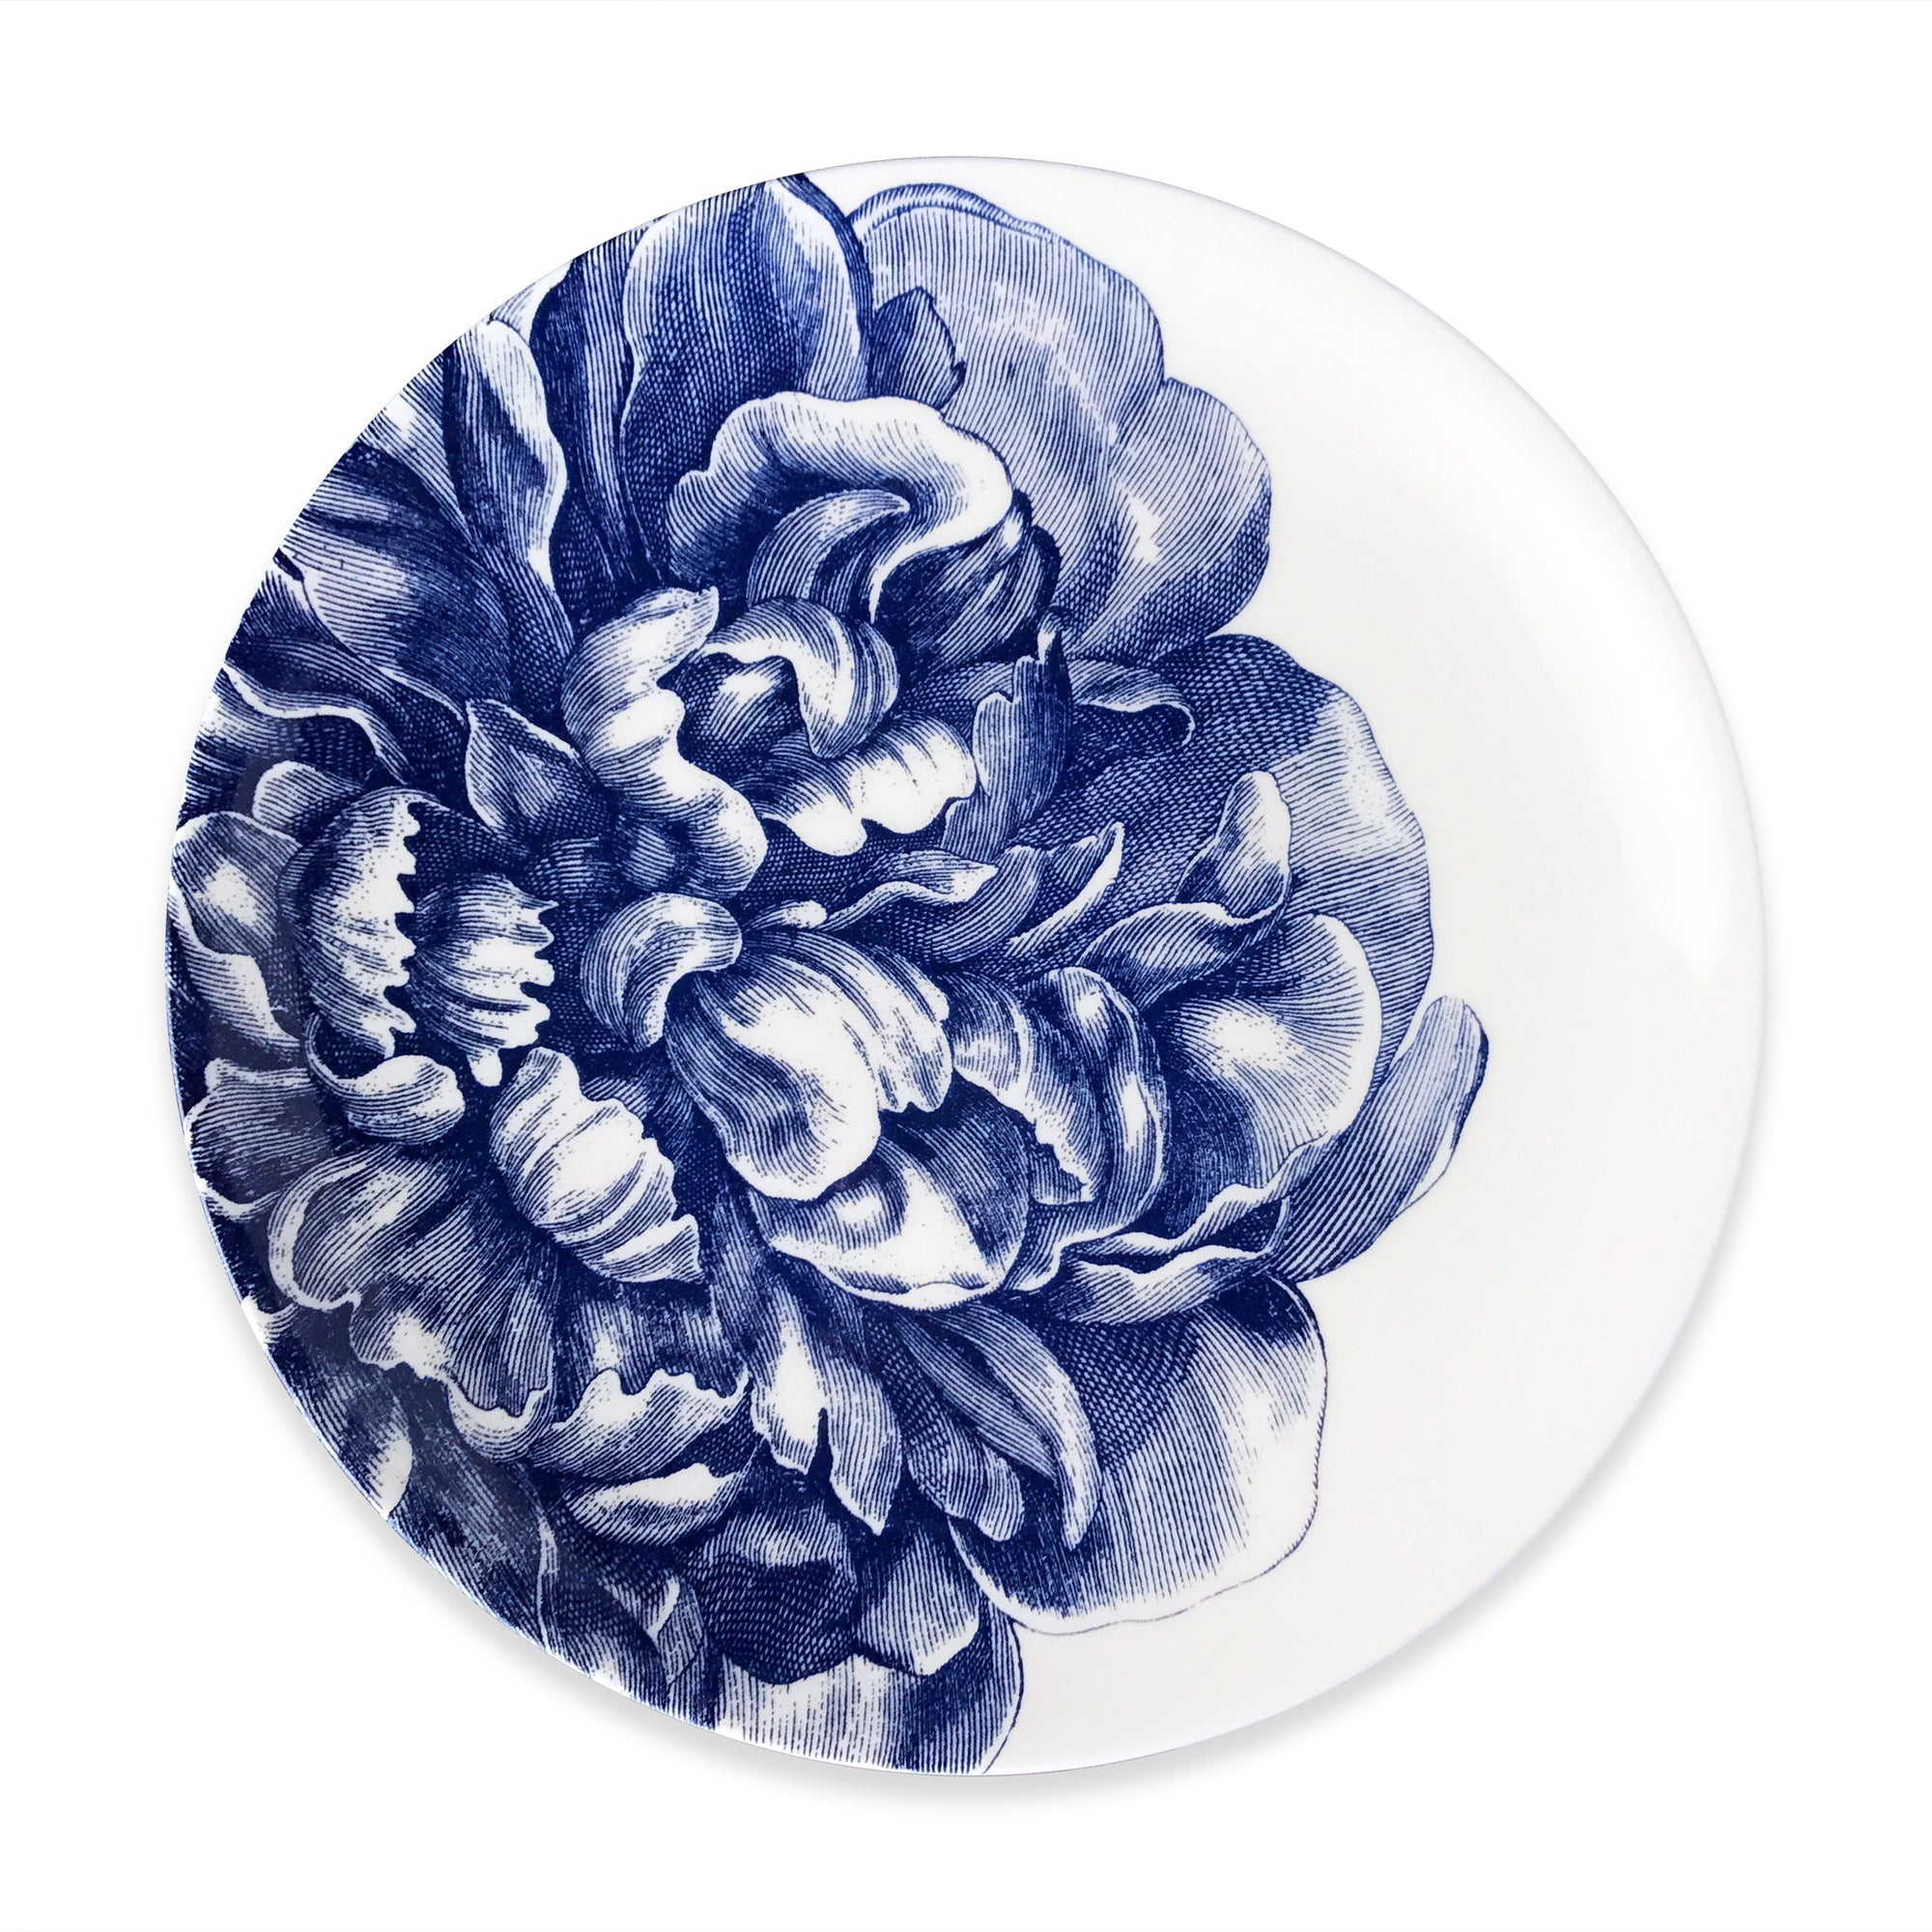 Peony Blue Bloom Coupe Dinner Plate - Caskata